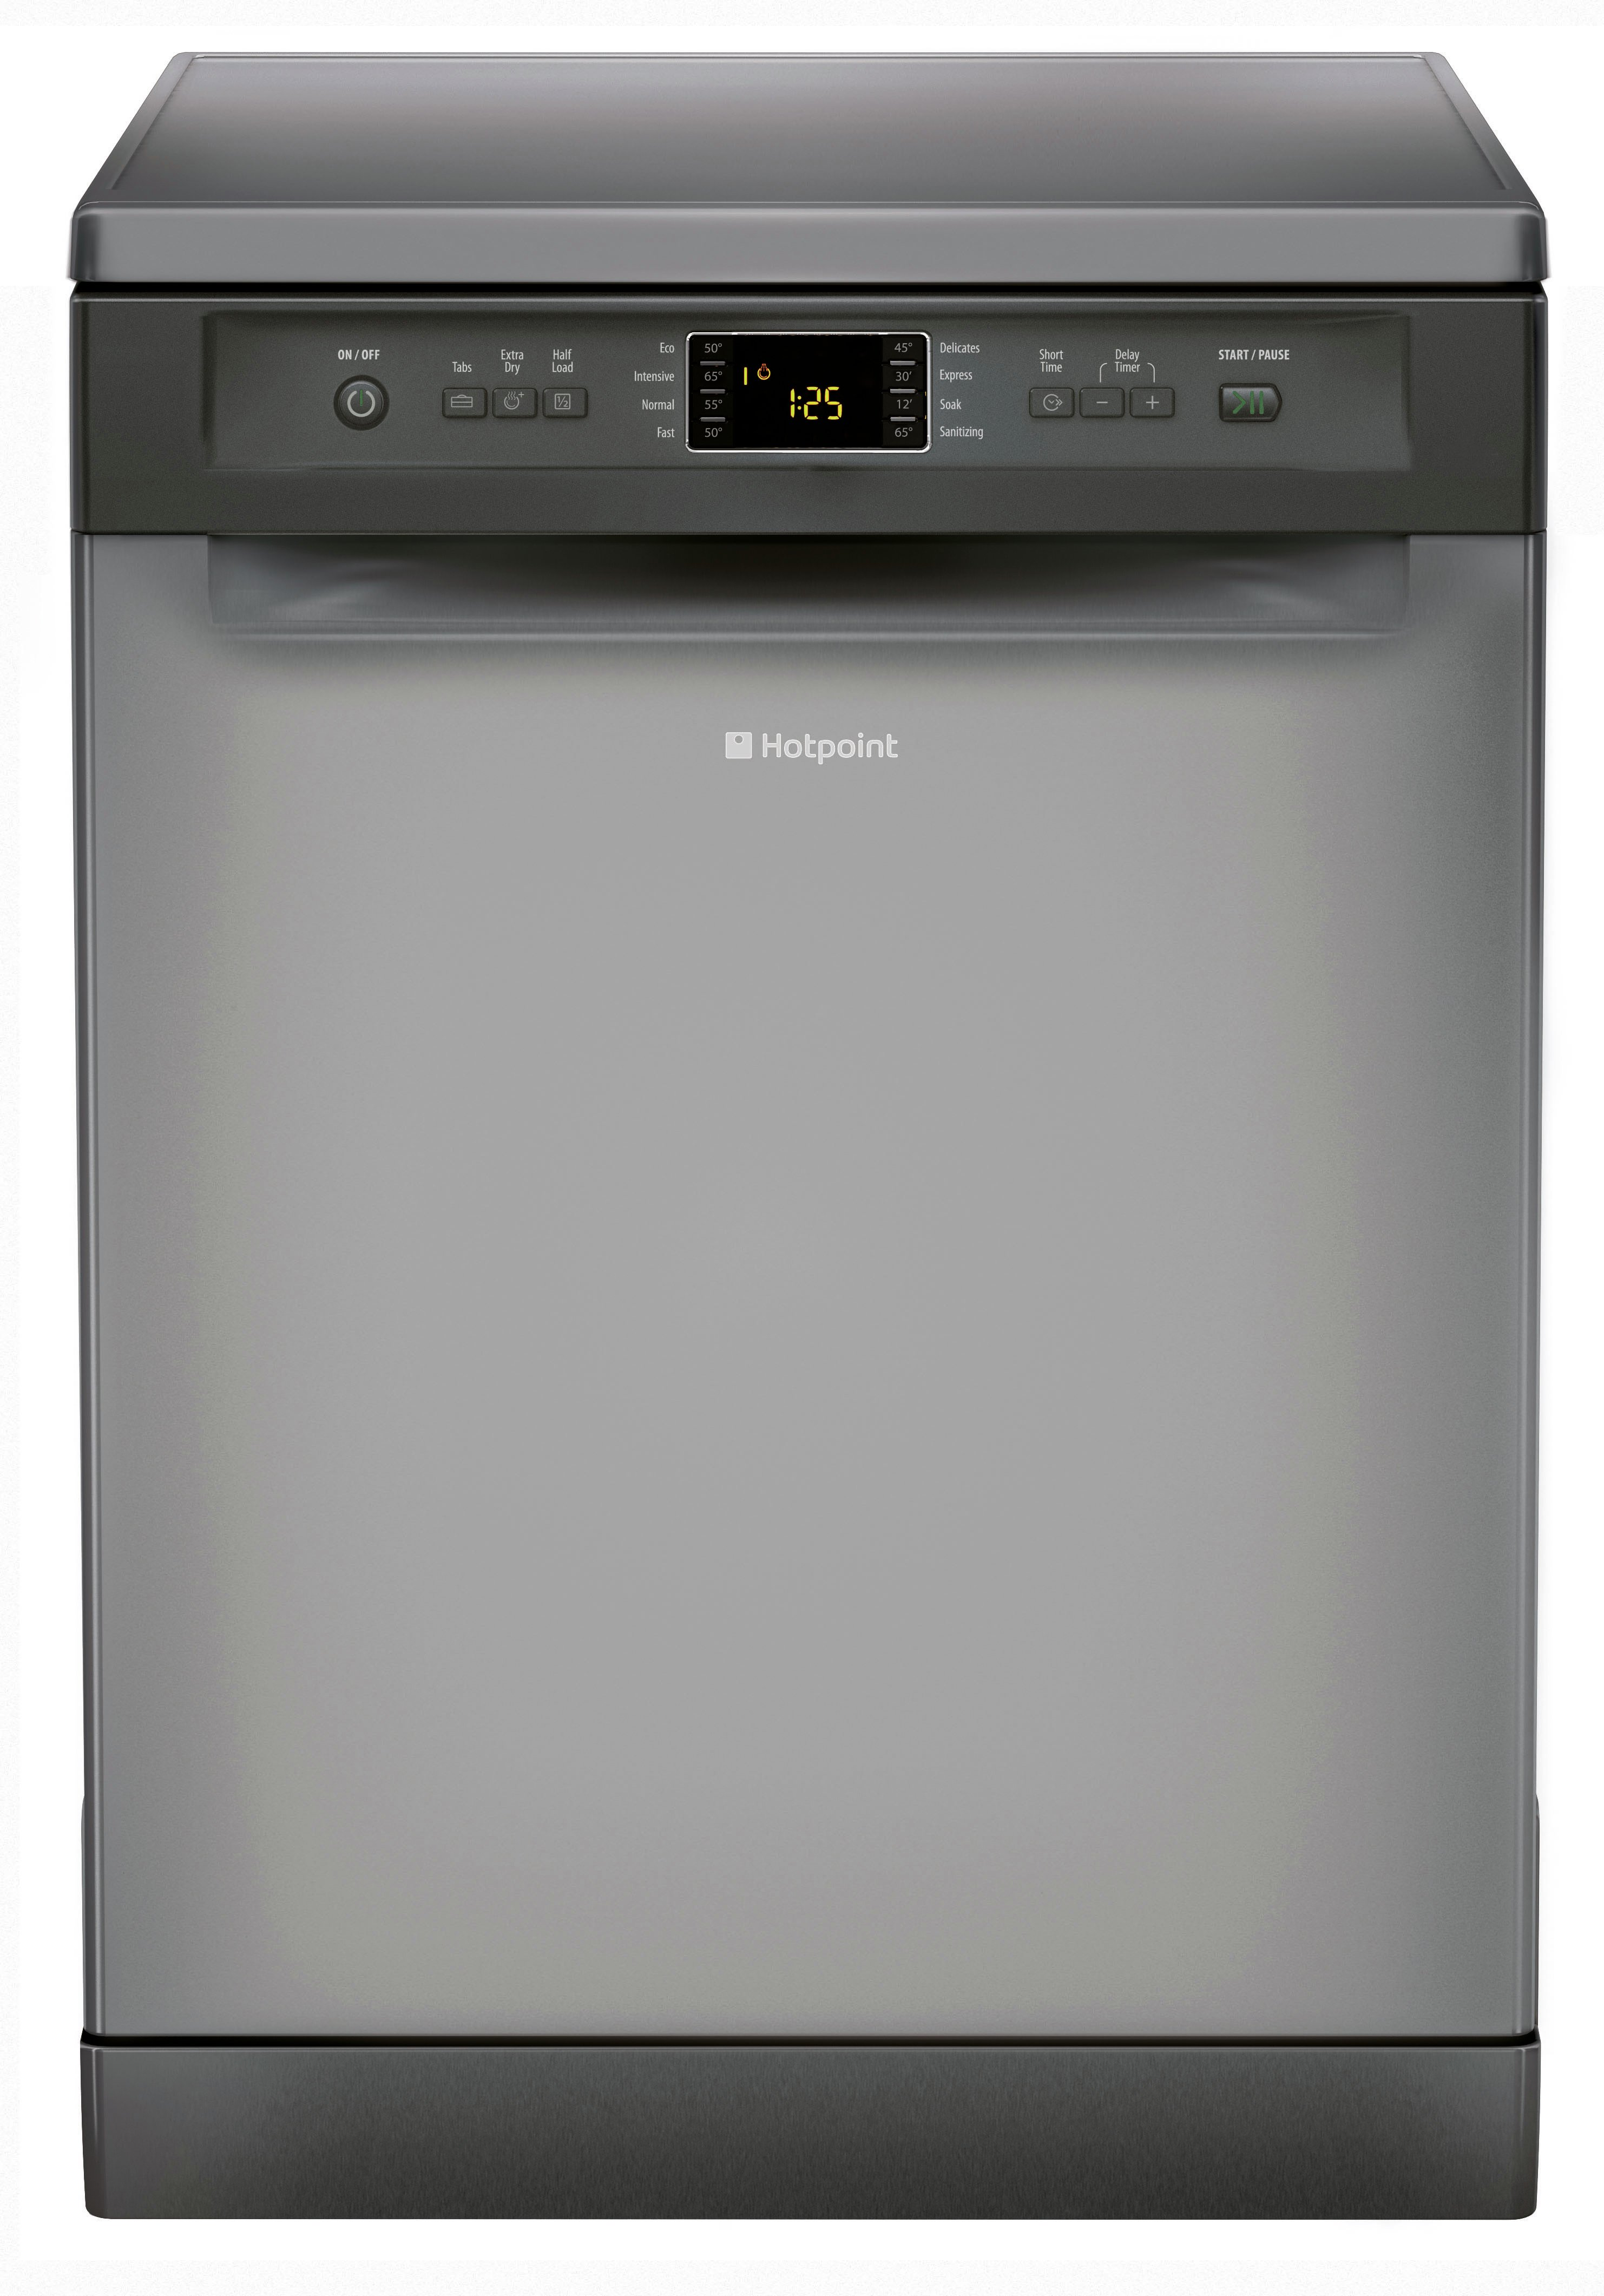 Image of Hotpoint - Extra FDFEX 11011 G Dishwasher - Graphite